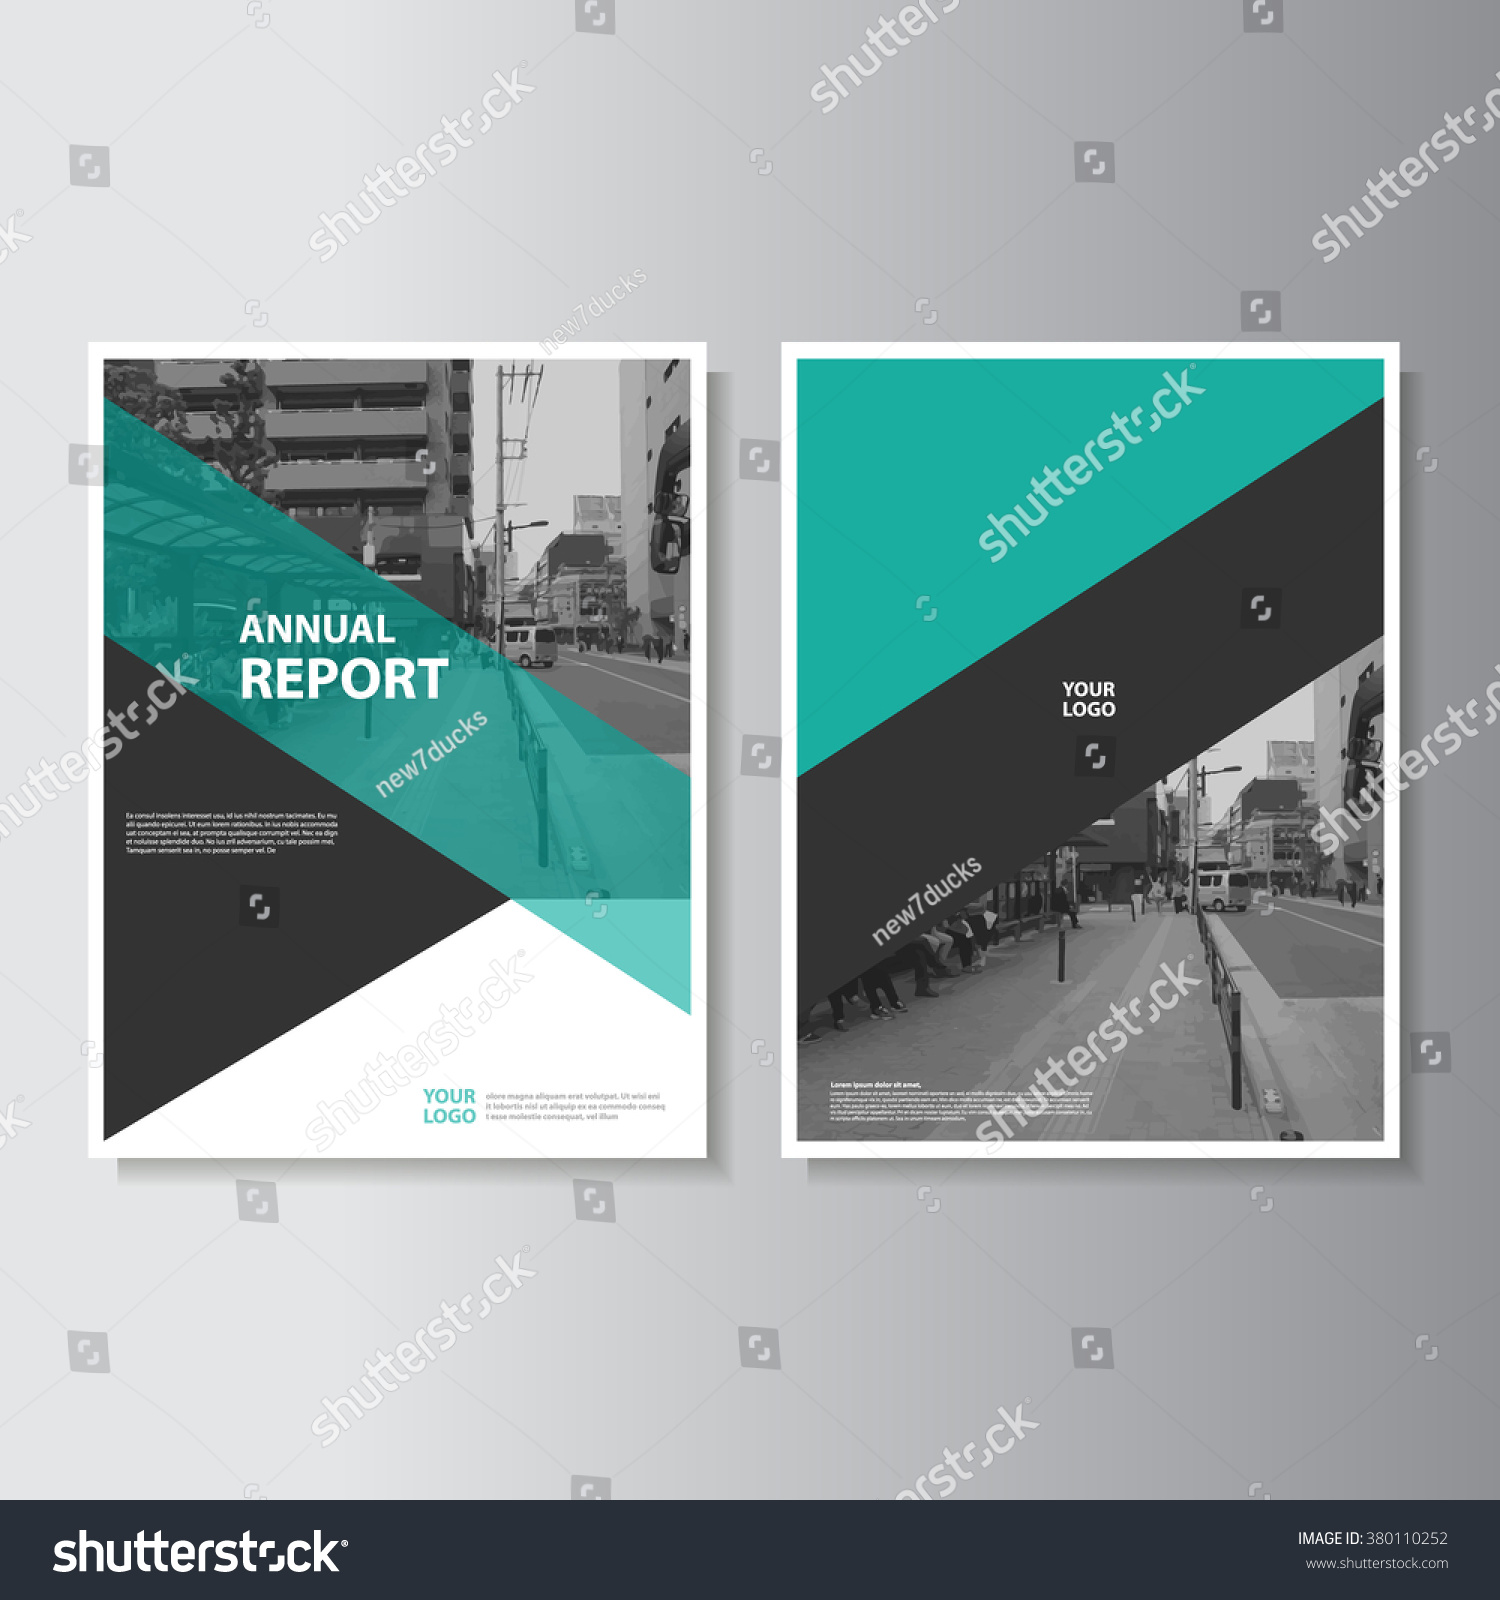 cover pages designs templates free - green annual report leaflet brochure flyer stock vector